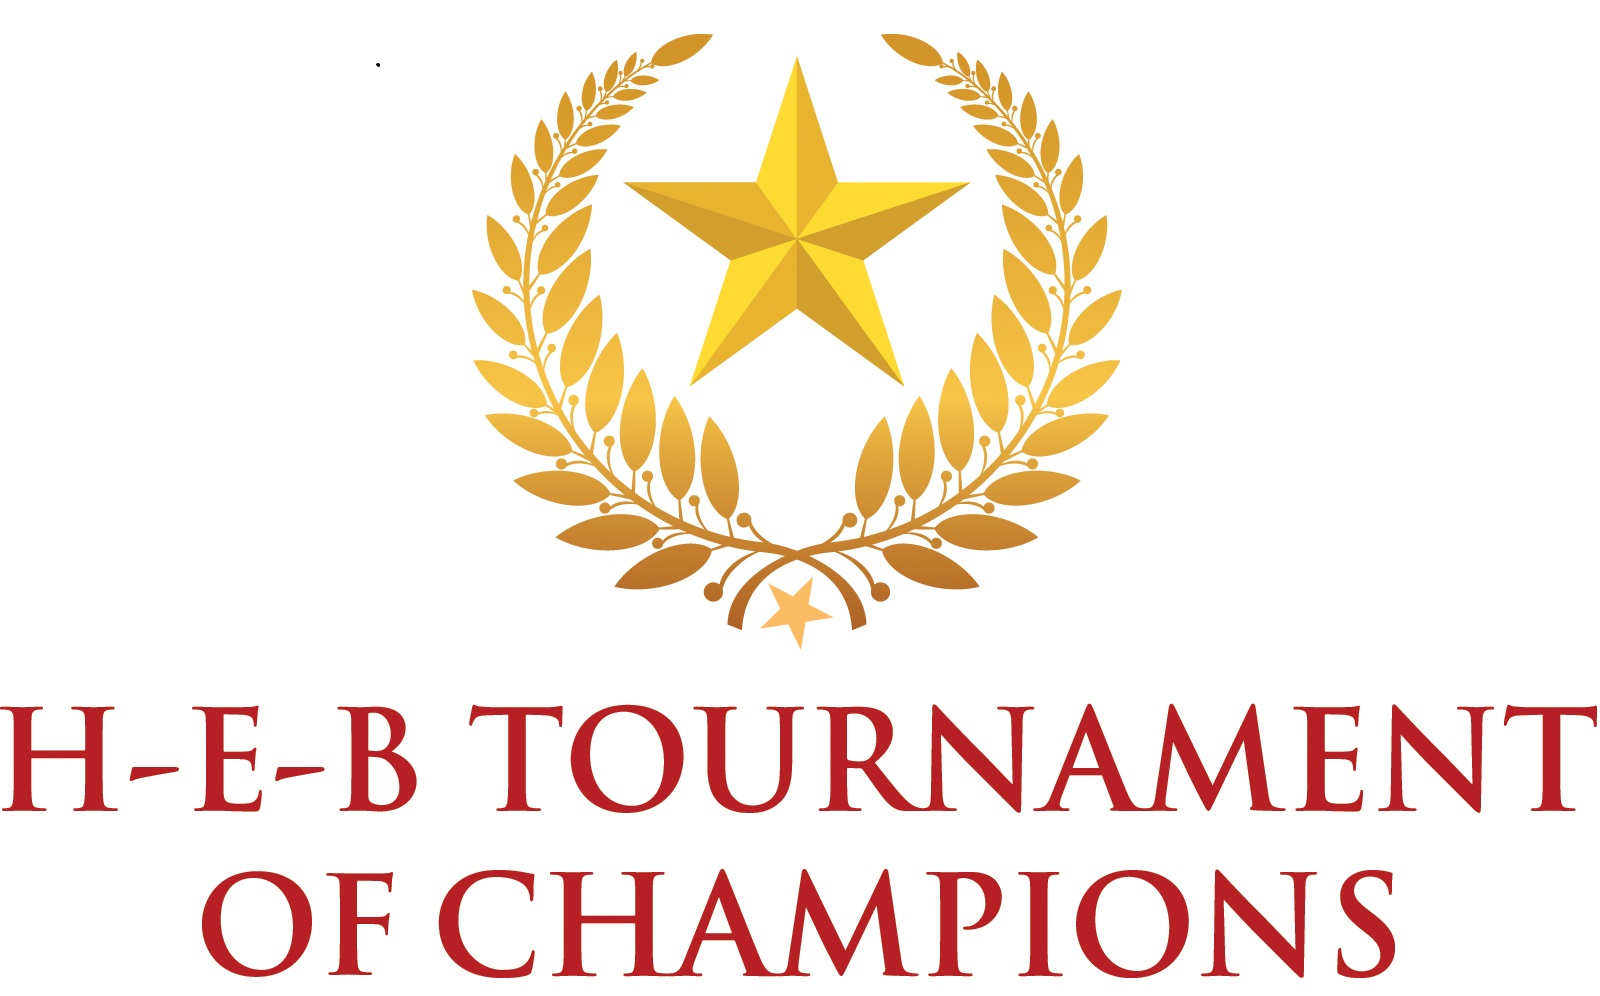 HEB tournament of champions logo as of 7-25-2014.jpg